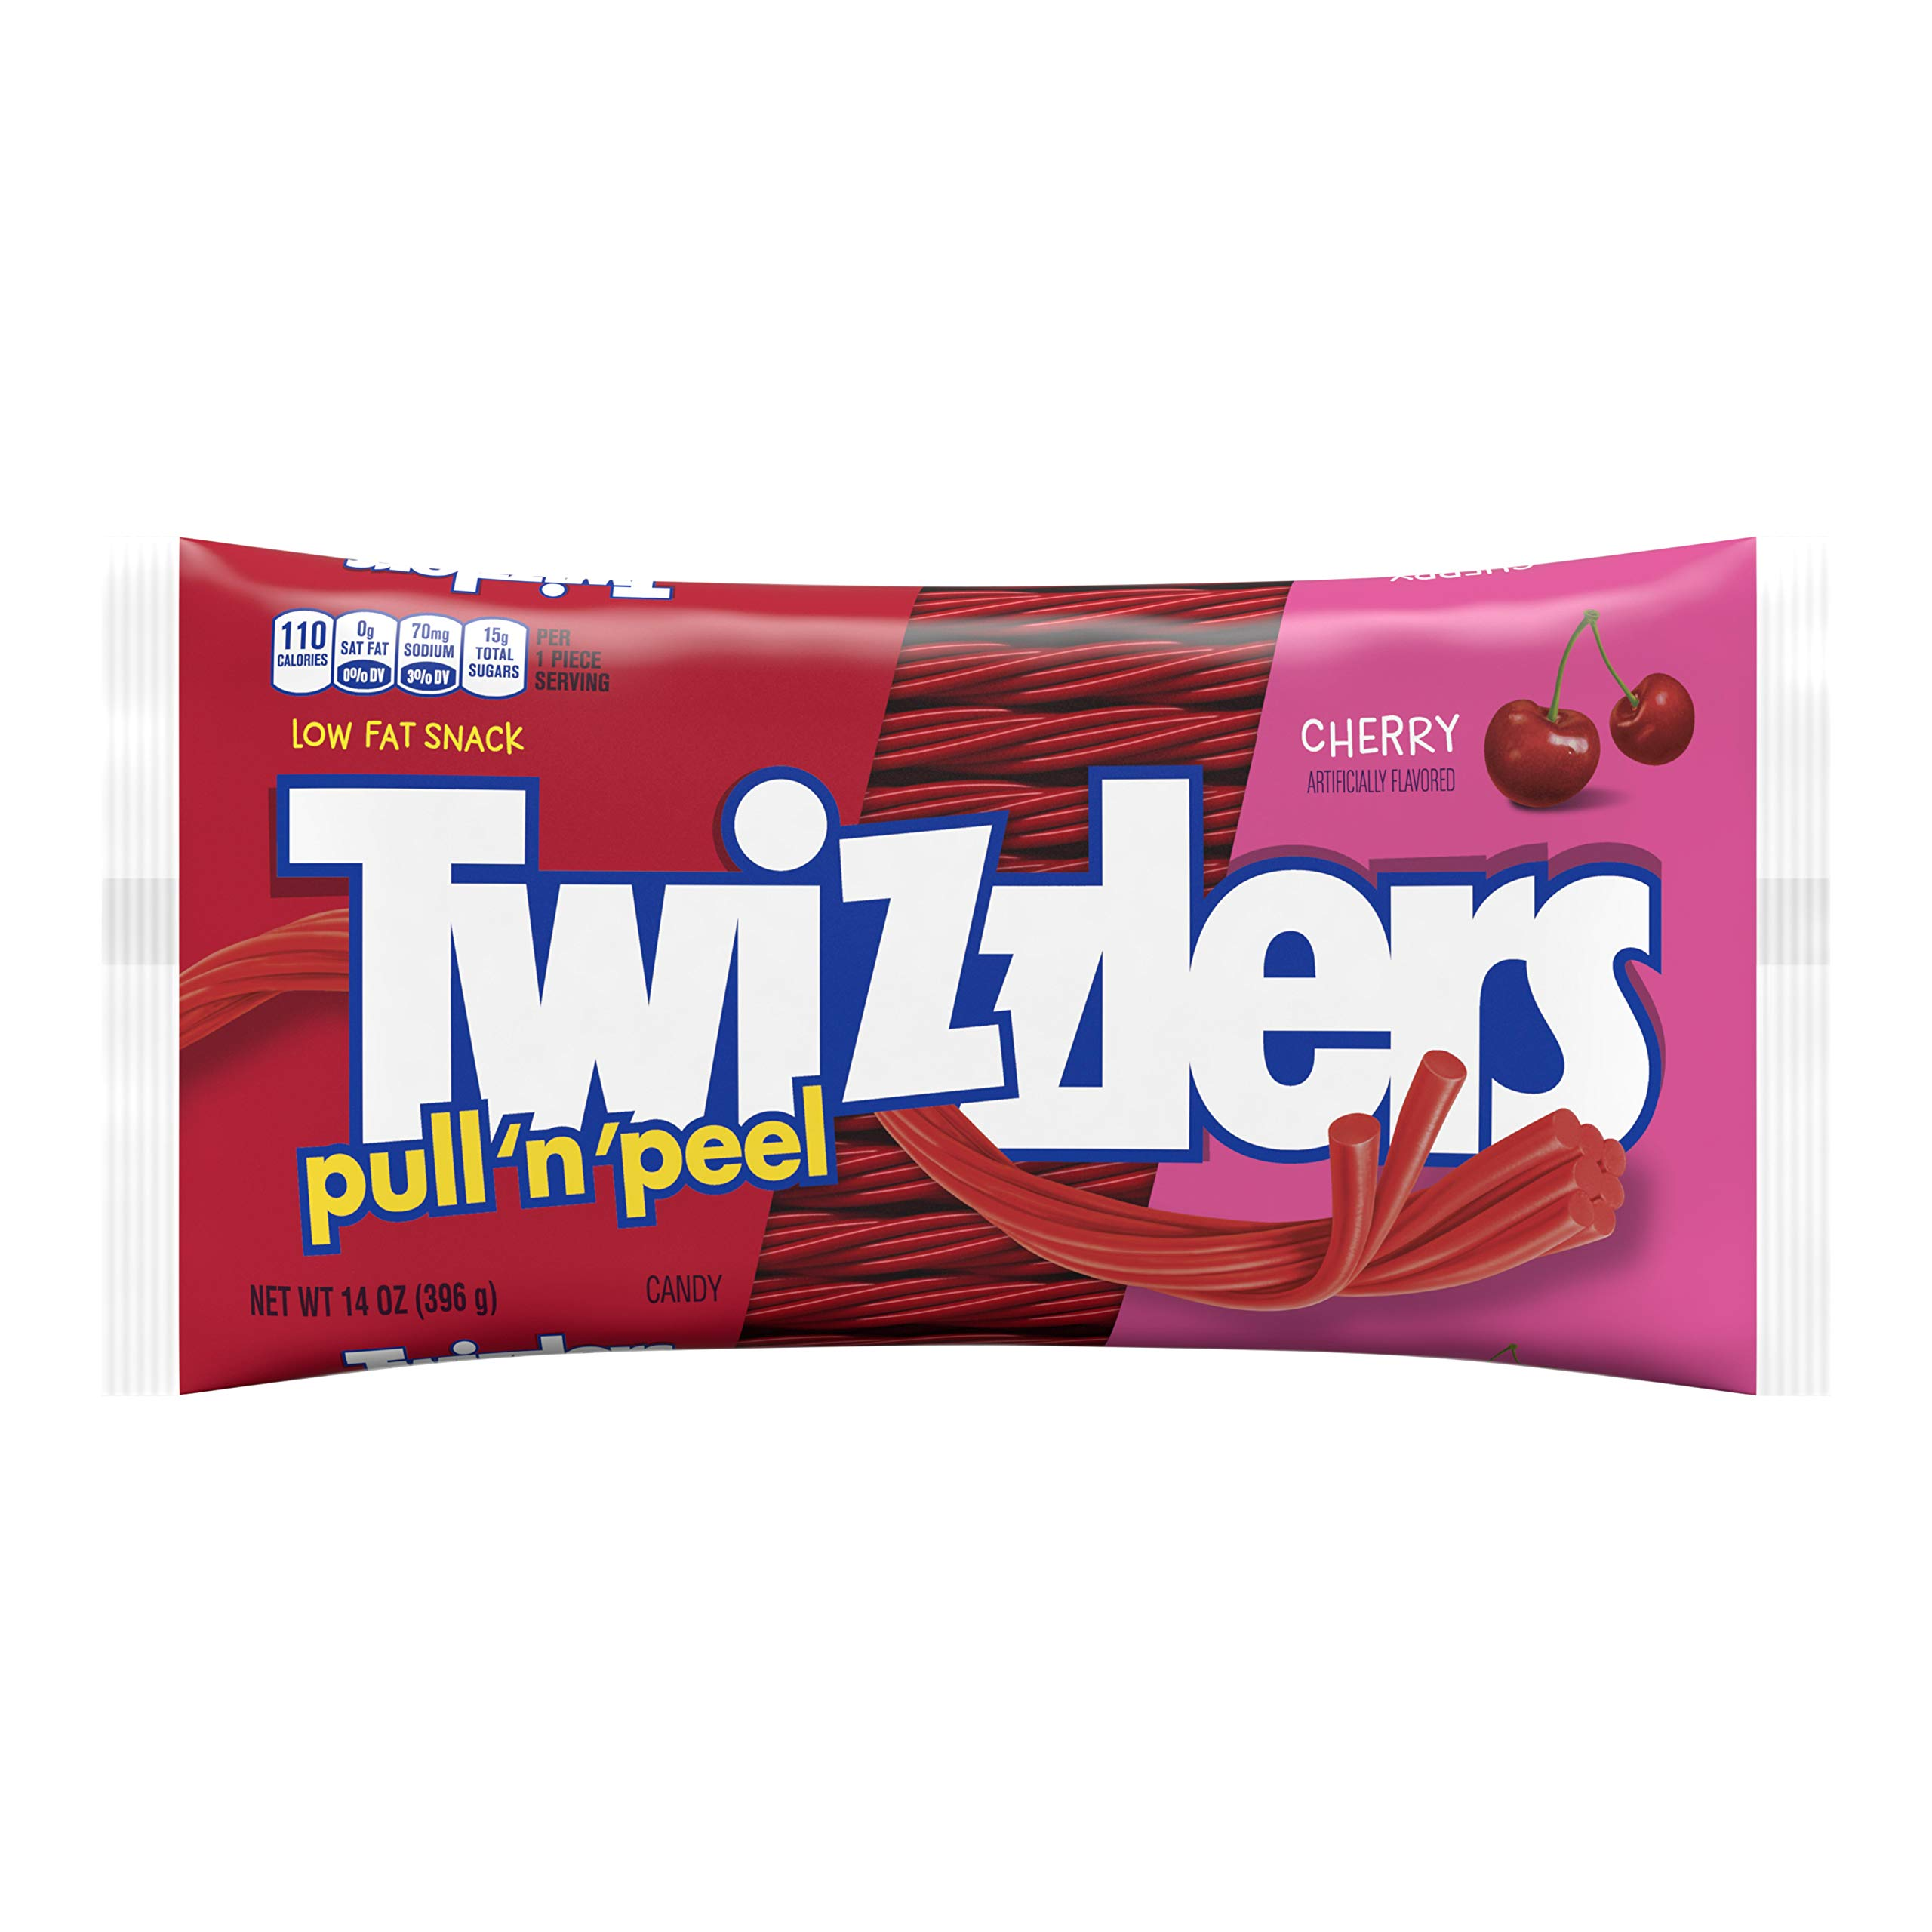 Twizzlers Candy, 14oz, PULL 'N' PEEL Cherry